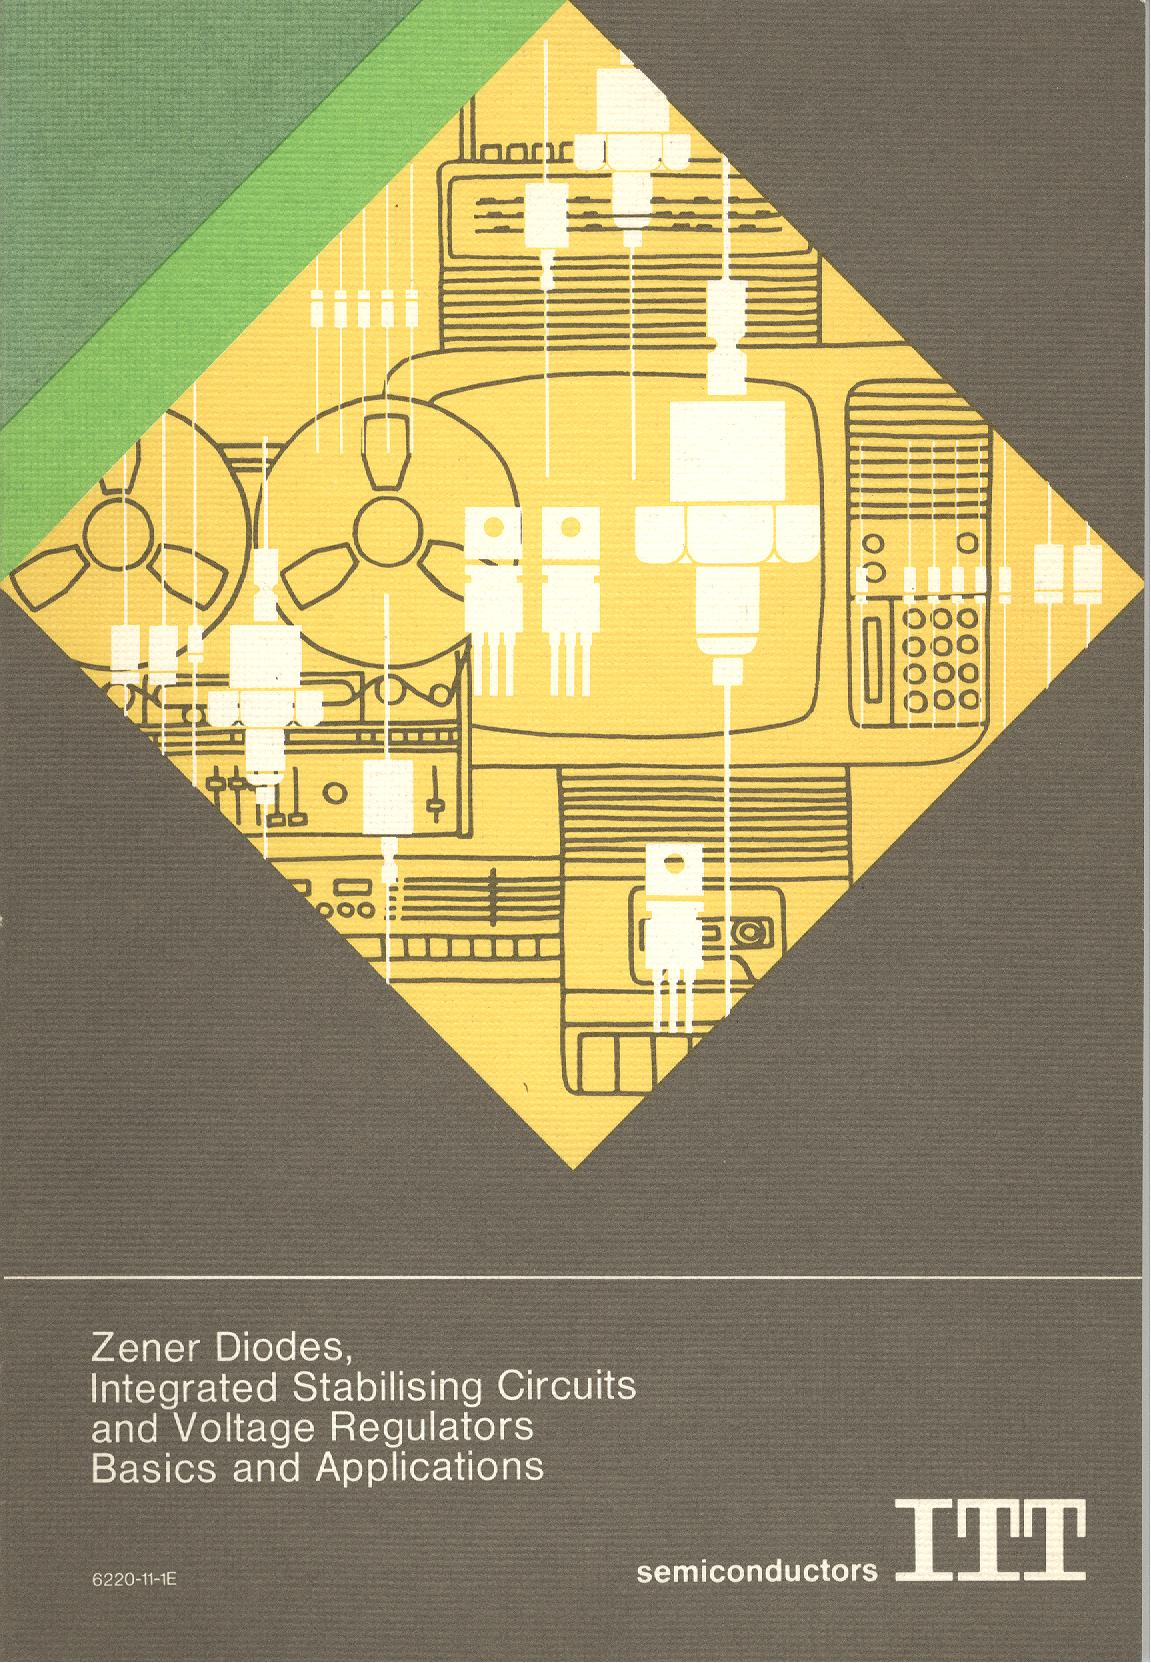 Zener Diodes, Integrated Stabilising Circuits and Voltage Regulators